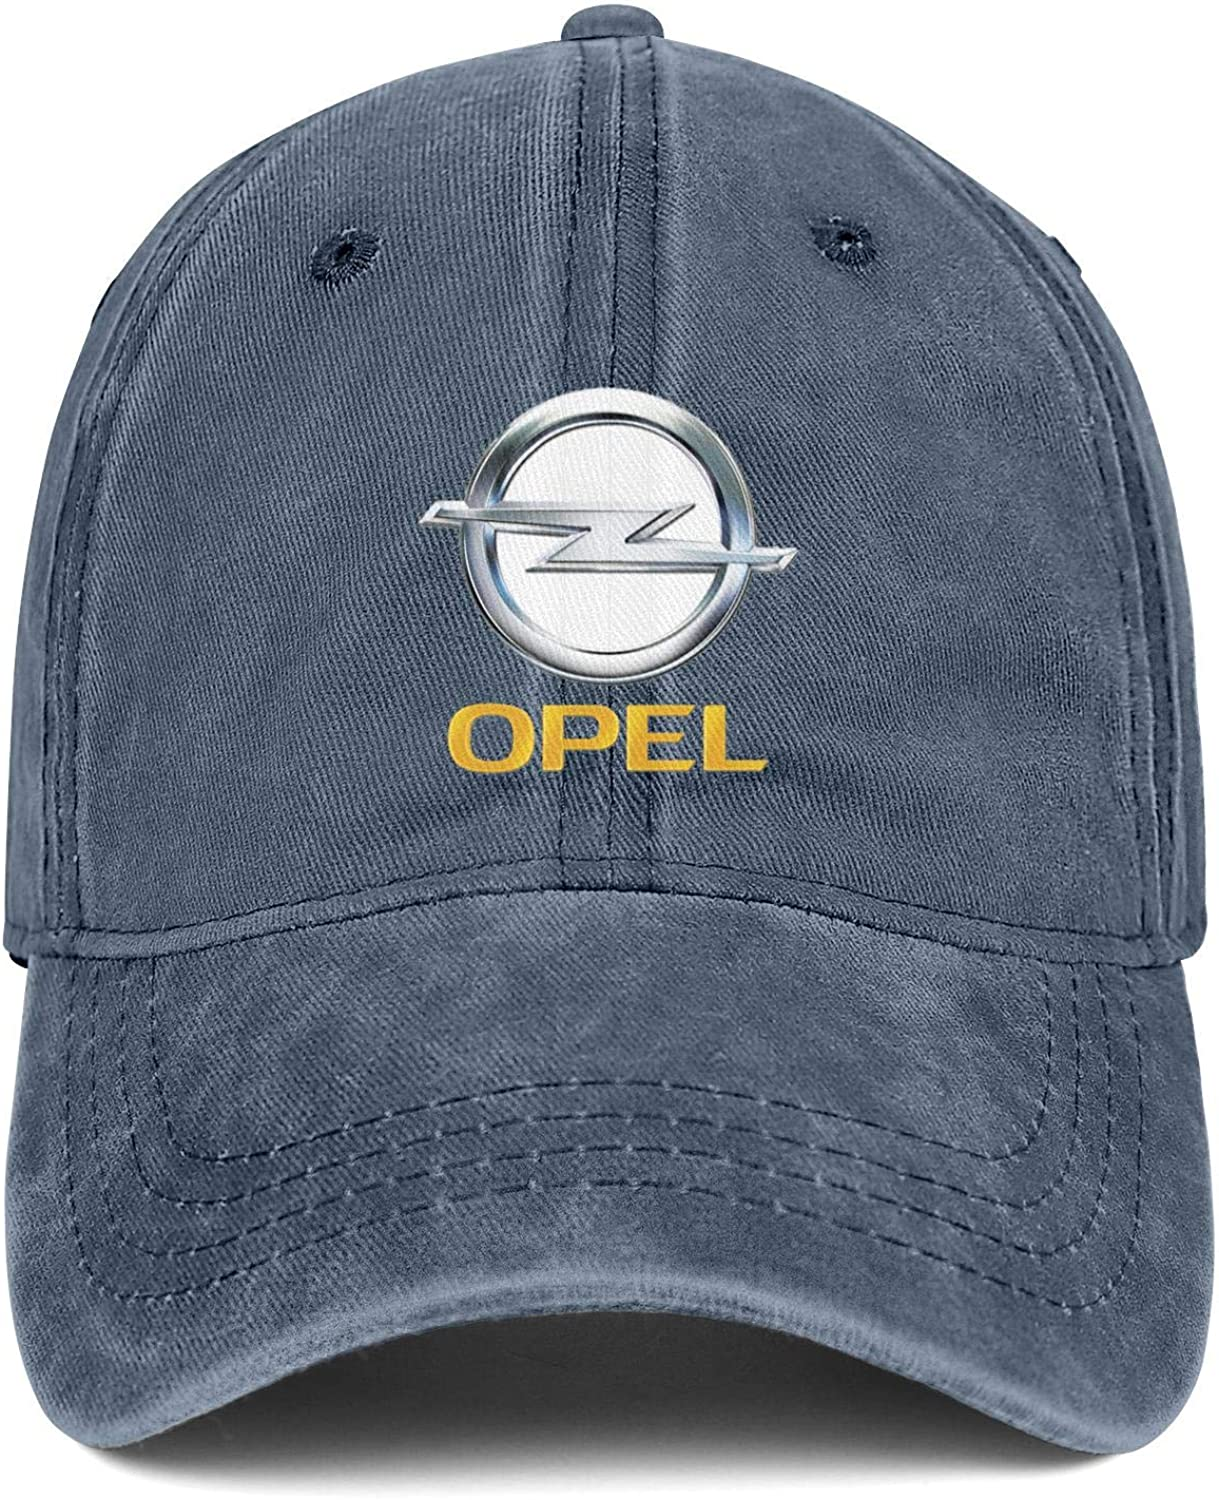 Mens Women Washed Ball Opel Cap Twill Adjustable Snapback Beach Hat One Size